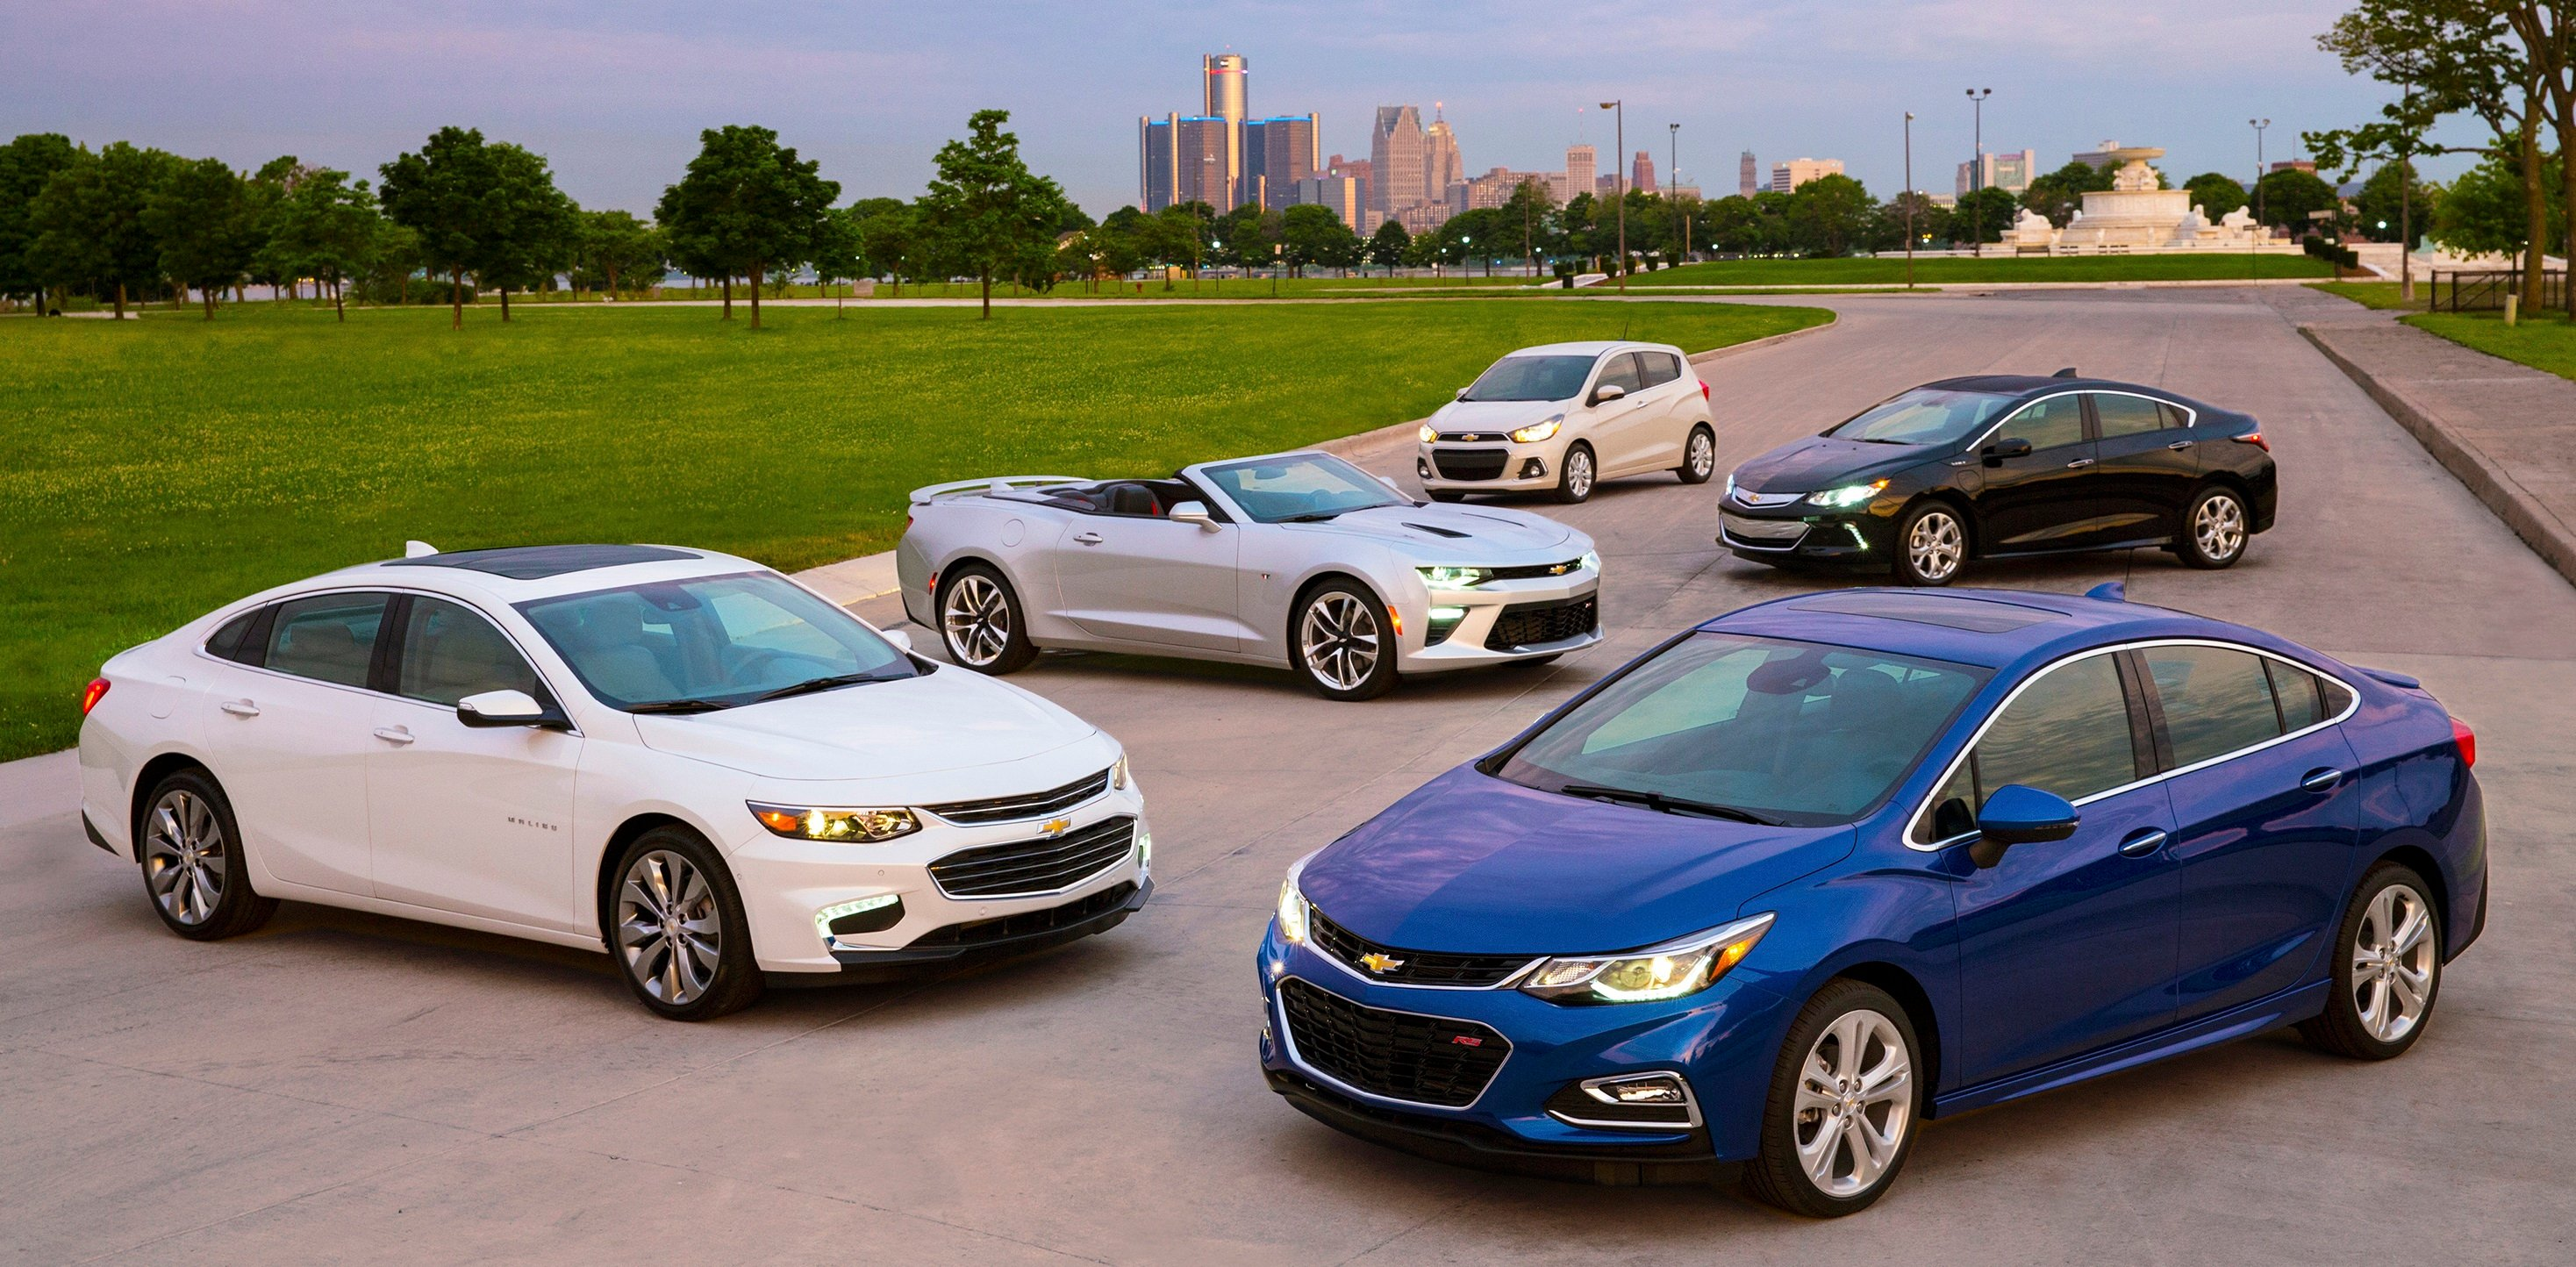 The 2016 Cruze (clockwise from lower right) joins Malibu, Camaro, Spark and Volt as the fifth all-new vehicle Chevrolet has revealed in 2015. These vehicles feature engaging performance, design that makes the heartbeat, passive and active safety features and easy-to-use technology, all at a value. (Chevrolet Photo)